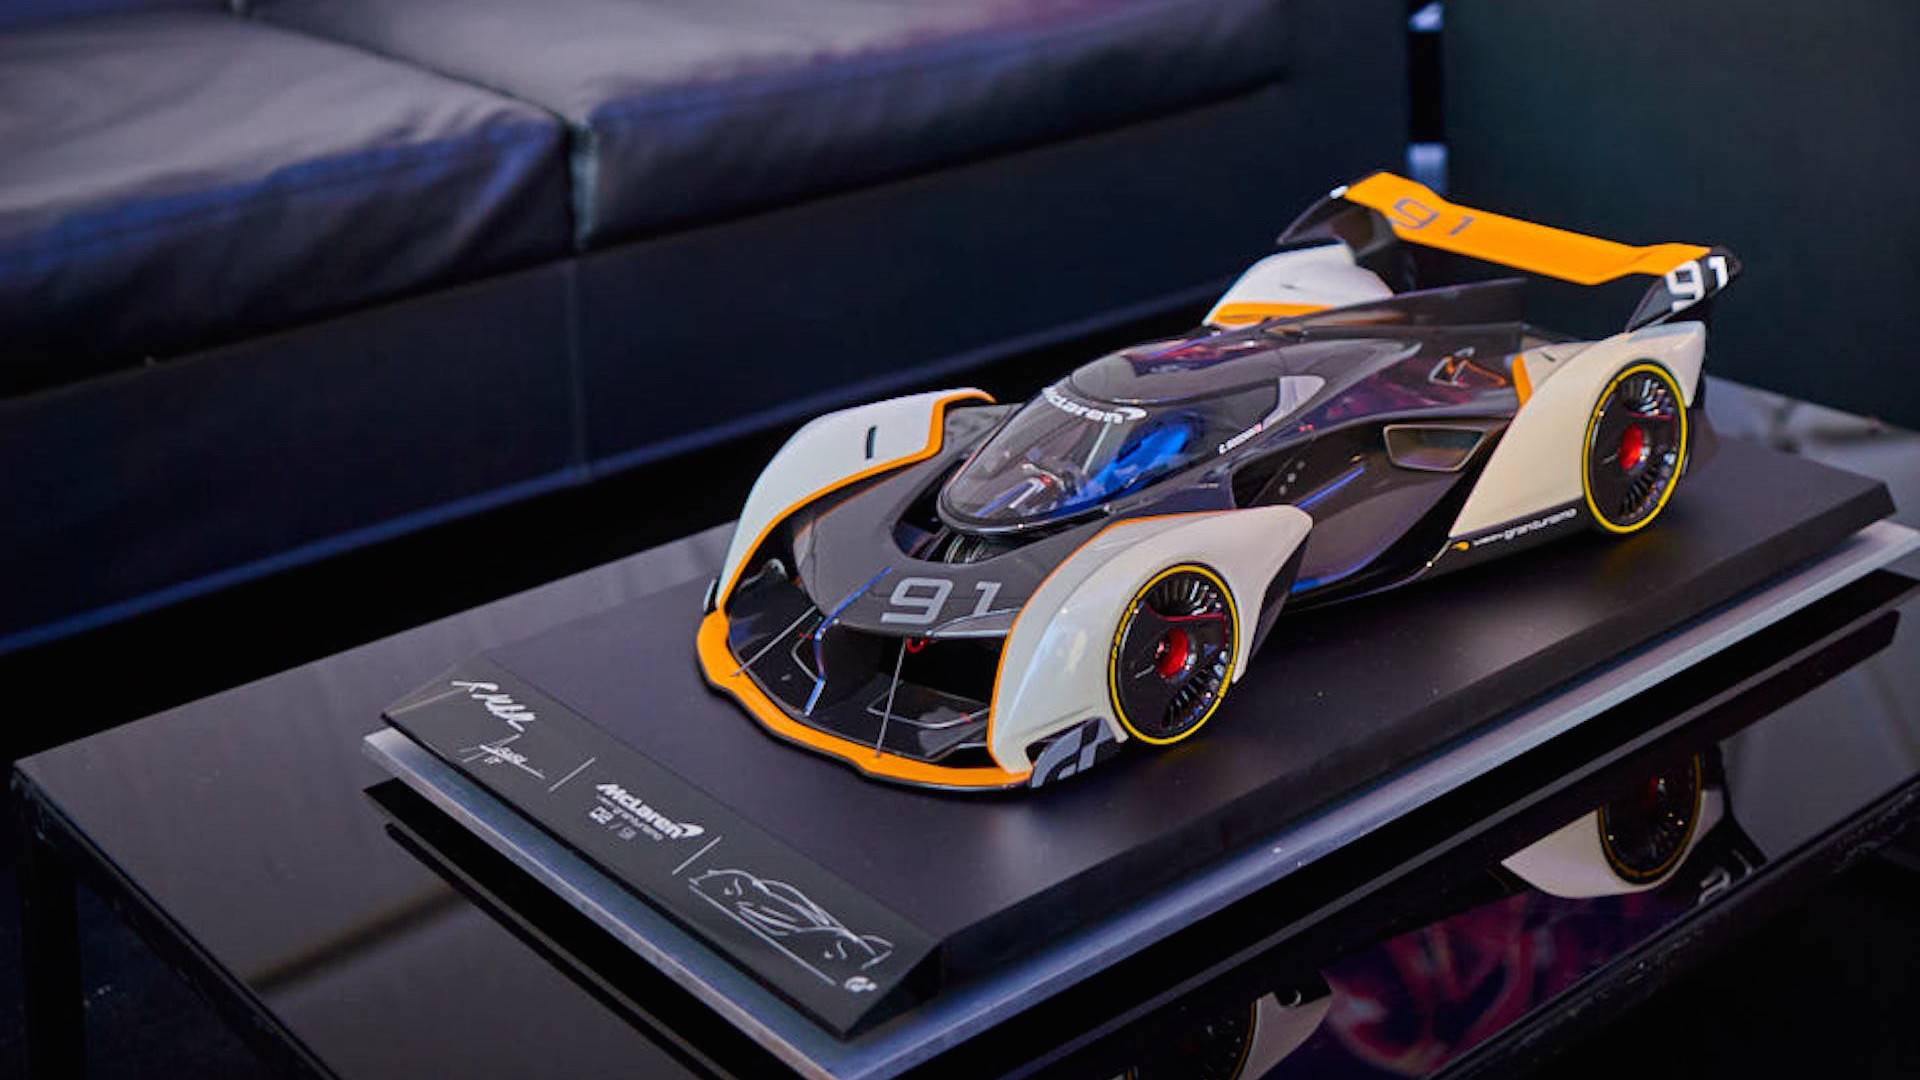 mclaren-ultimate-vision-gt-scale-model (37)